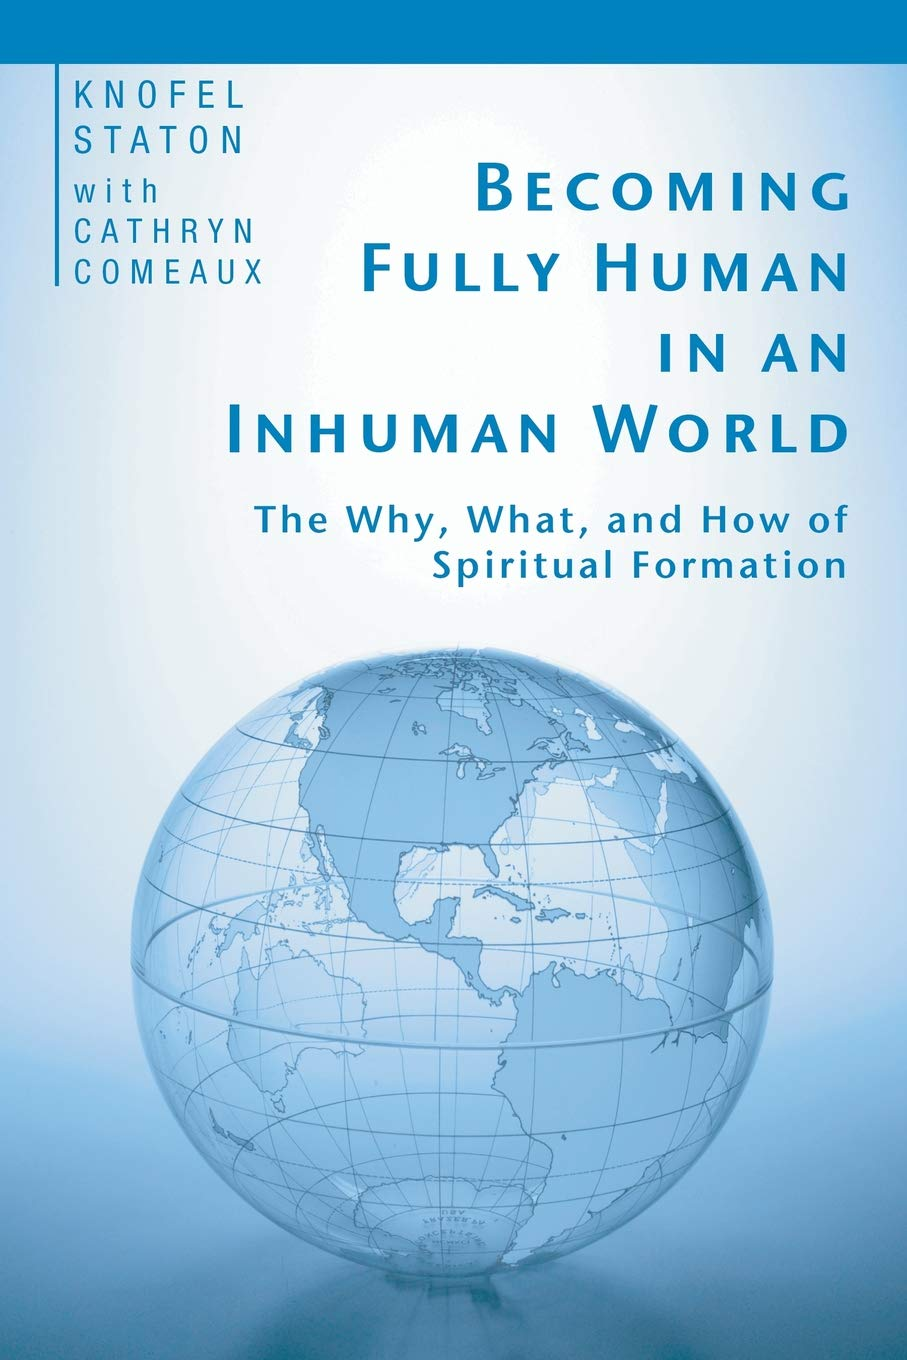 Download Becoming Fully Human in an Inhuman World: The Why, What, and How of Spiritual Formation PDF